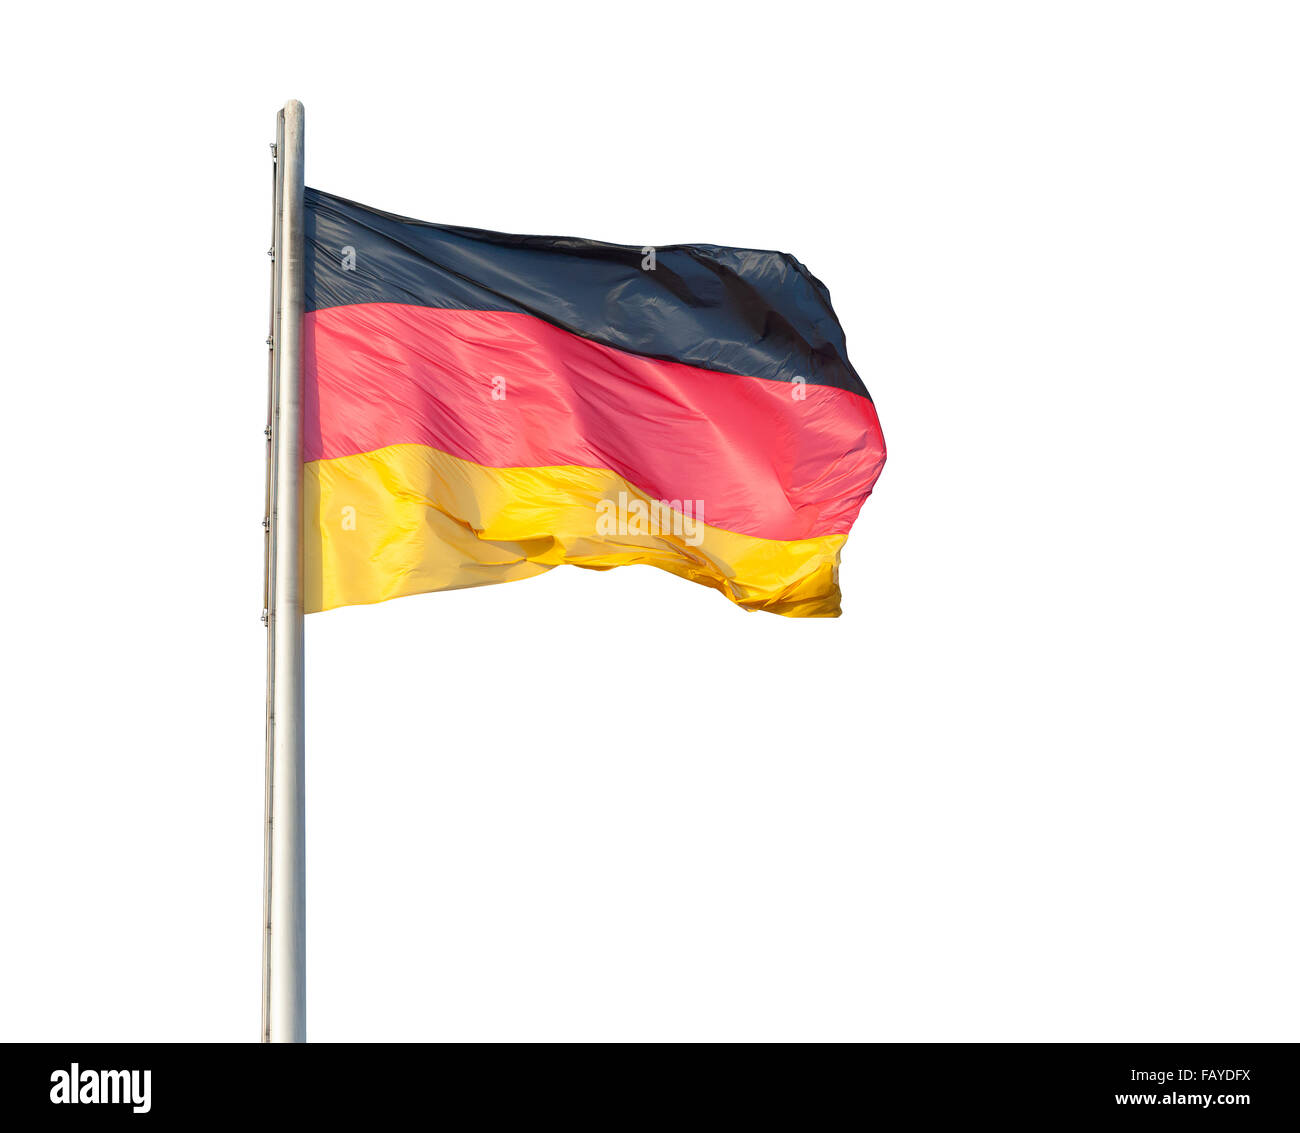 The German flag flying on a metal pole, isolated on a white background - Stock Image